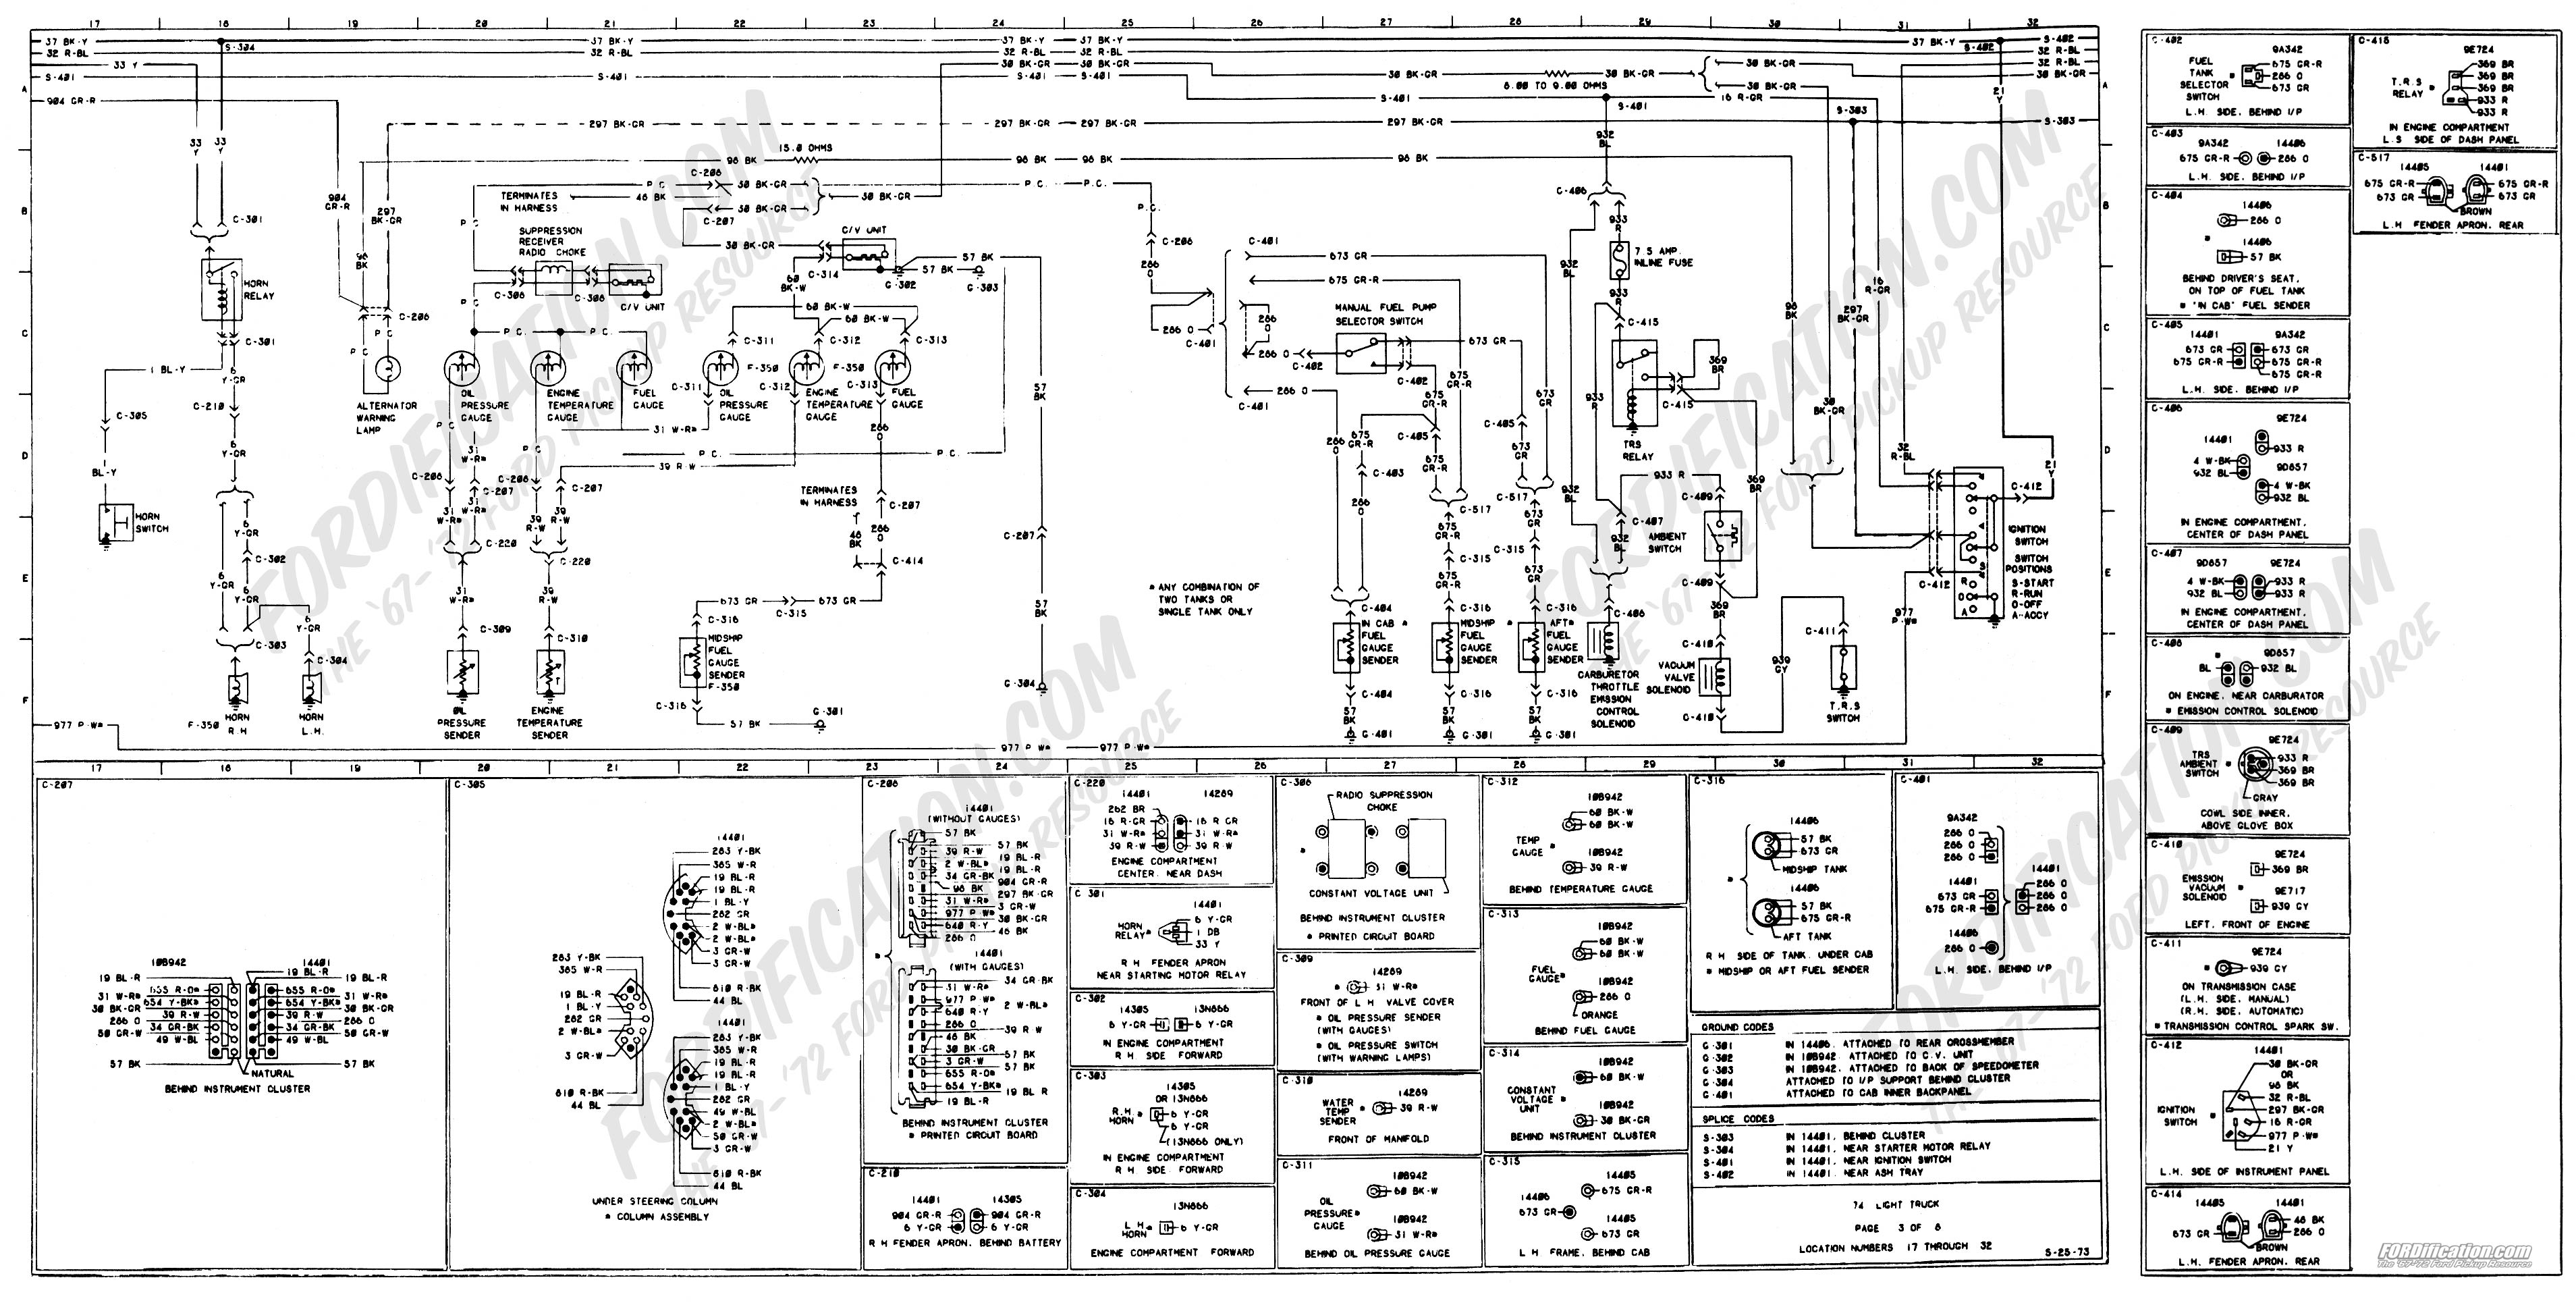 1975 Ford F 250 Alternator Wiring Top Engine Fuse Diagram Schematic Parts List For Model Ei24mo45iba 1974 F250 Opinions About U2022 Rh Voterid Co